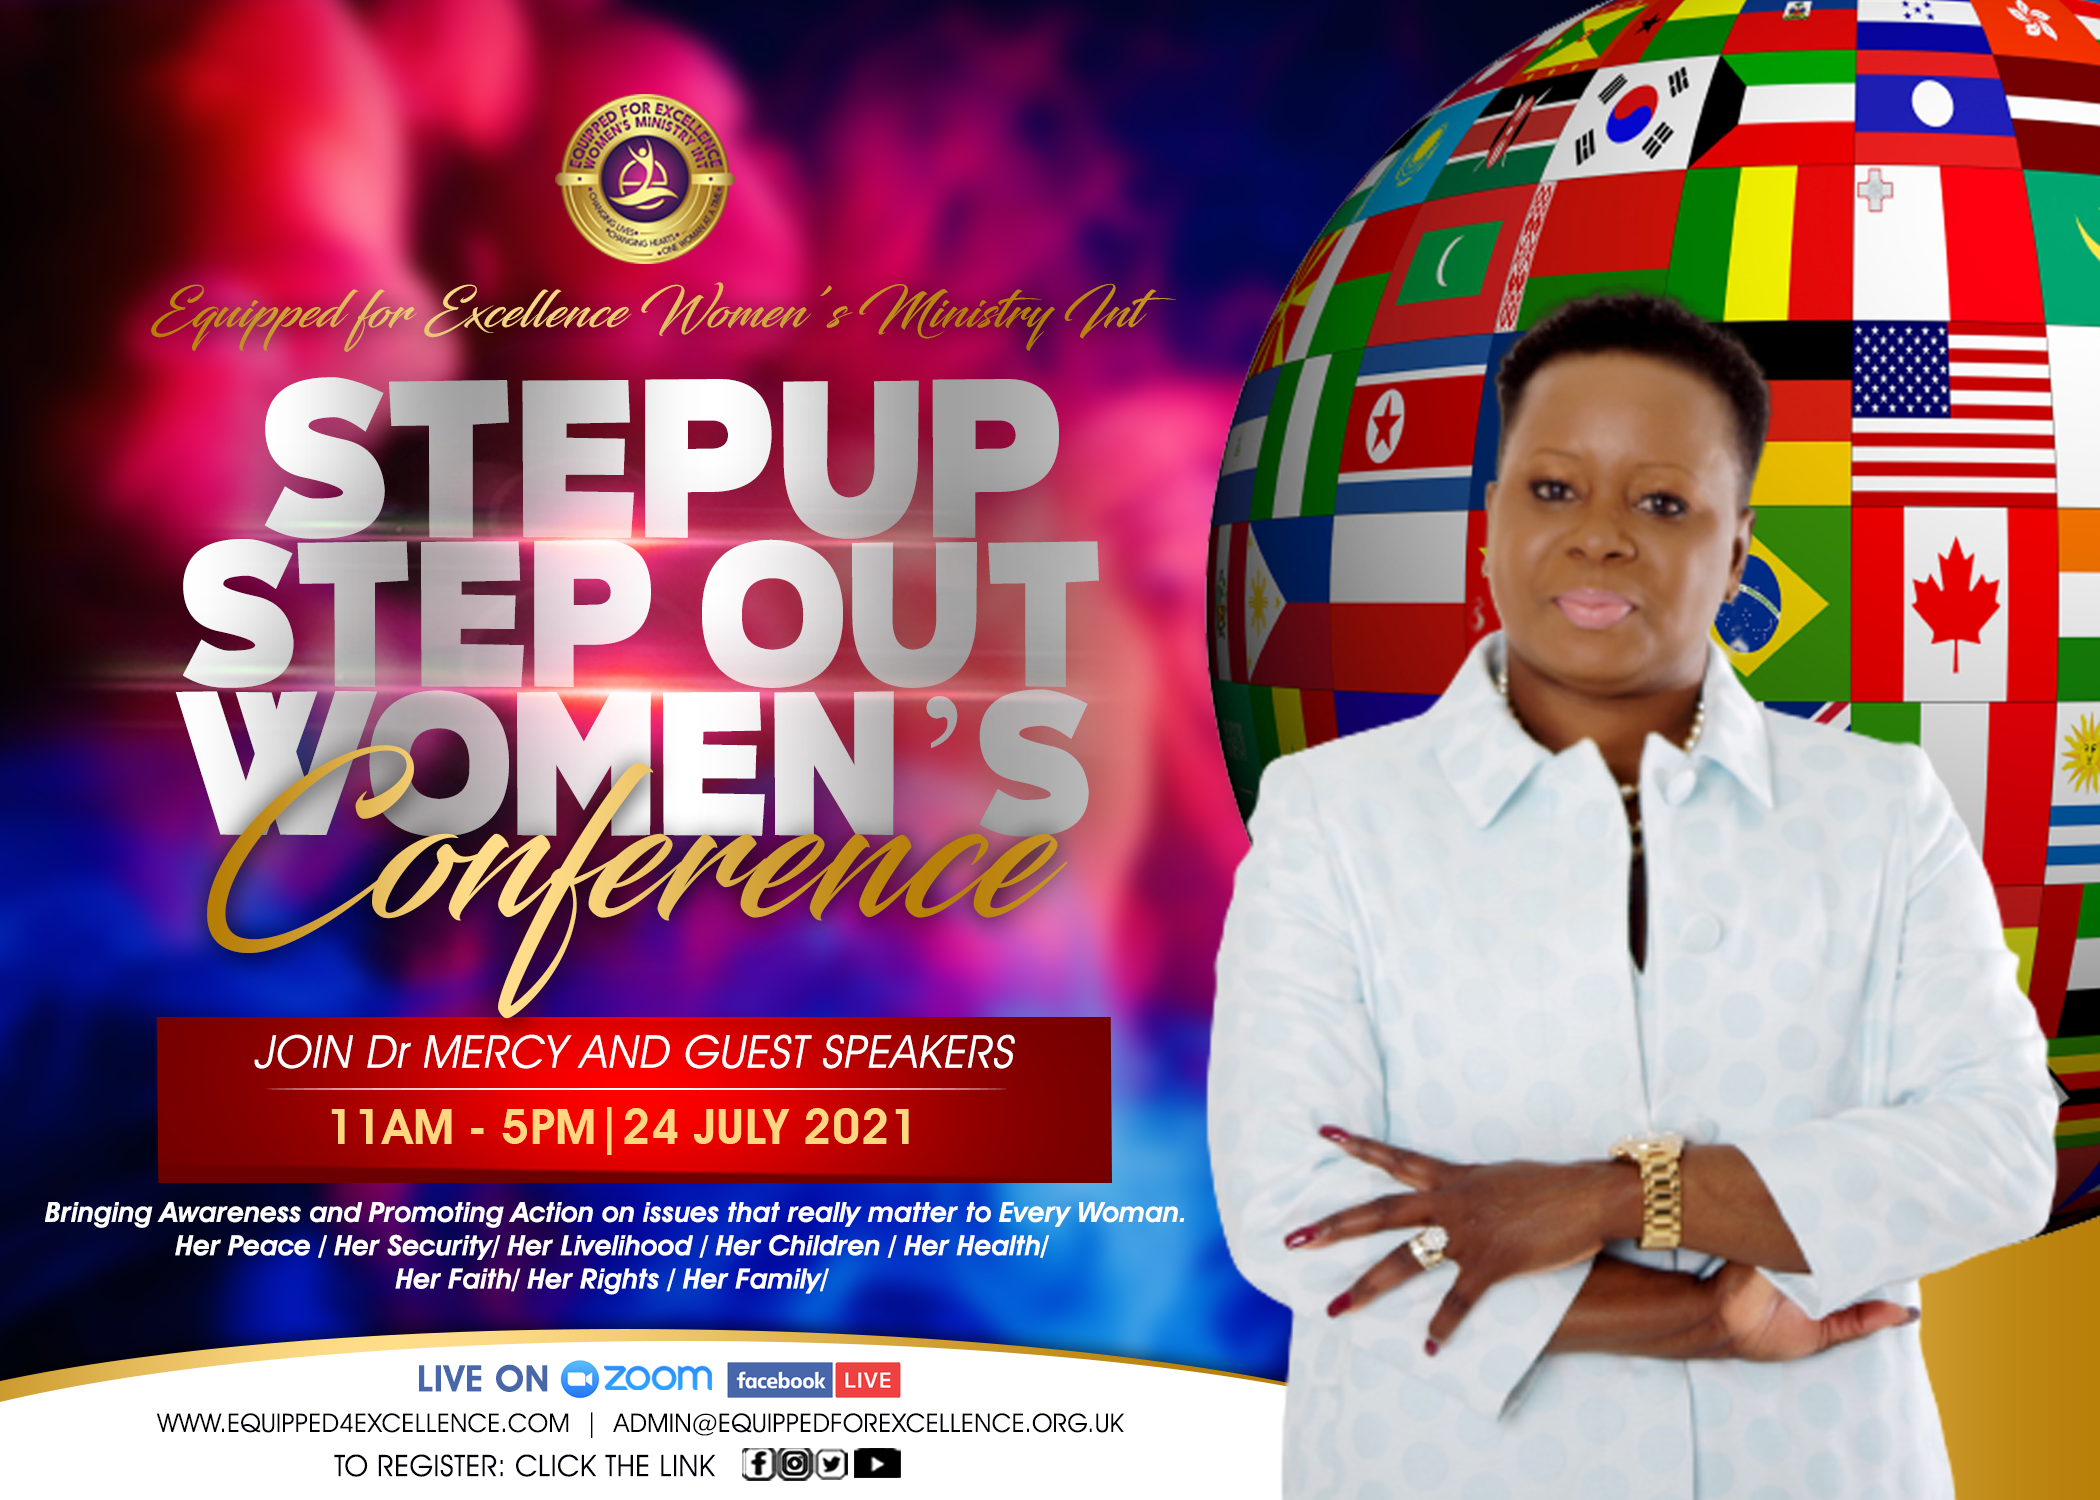 Dr Mercy Hosts: StepUp StepOut Women's Conference